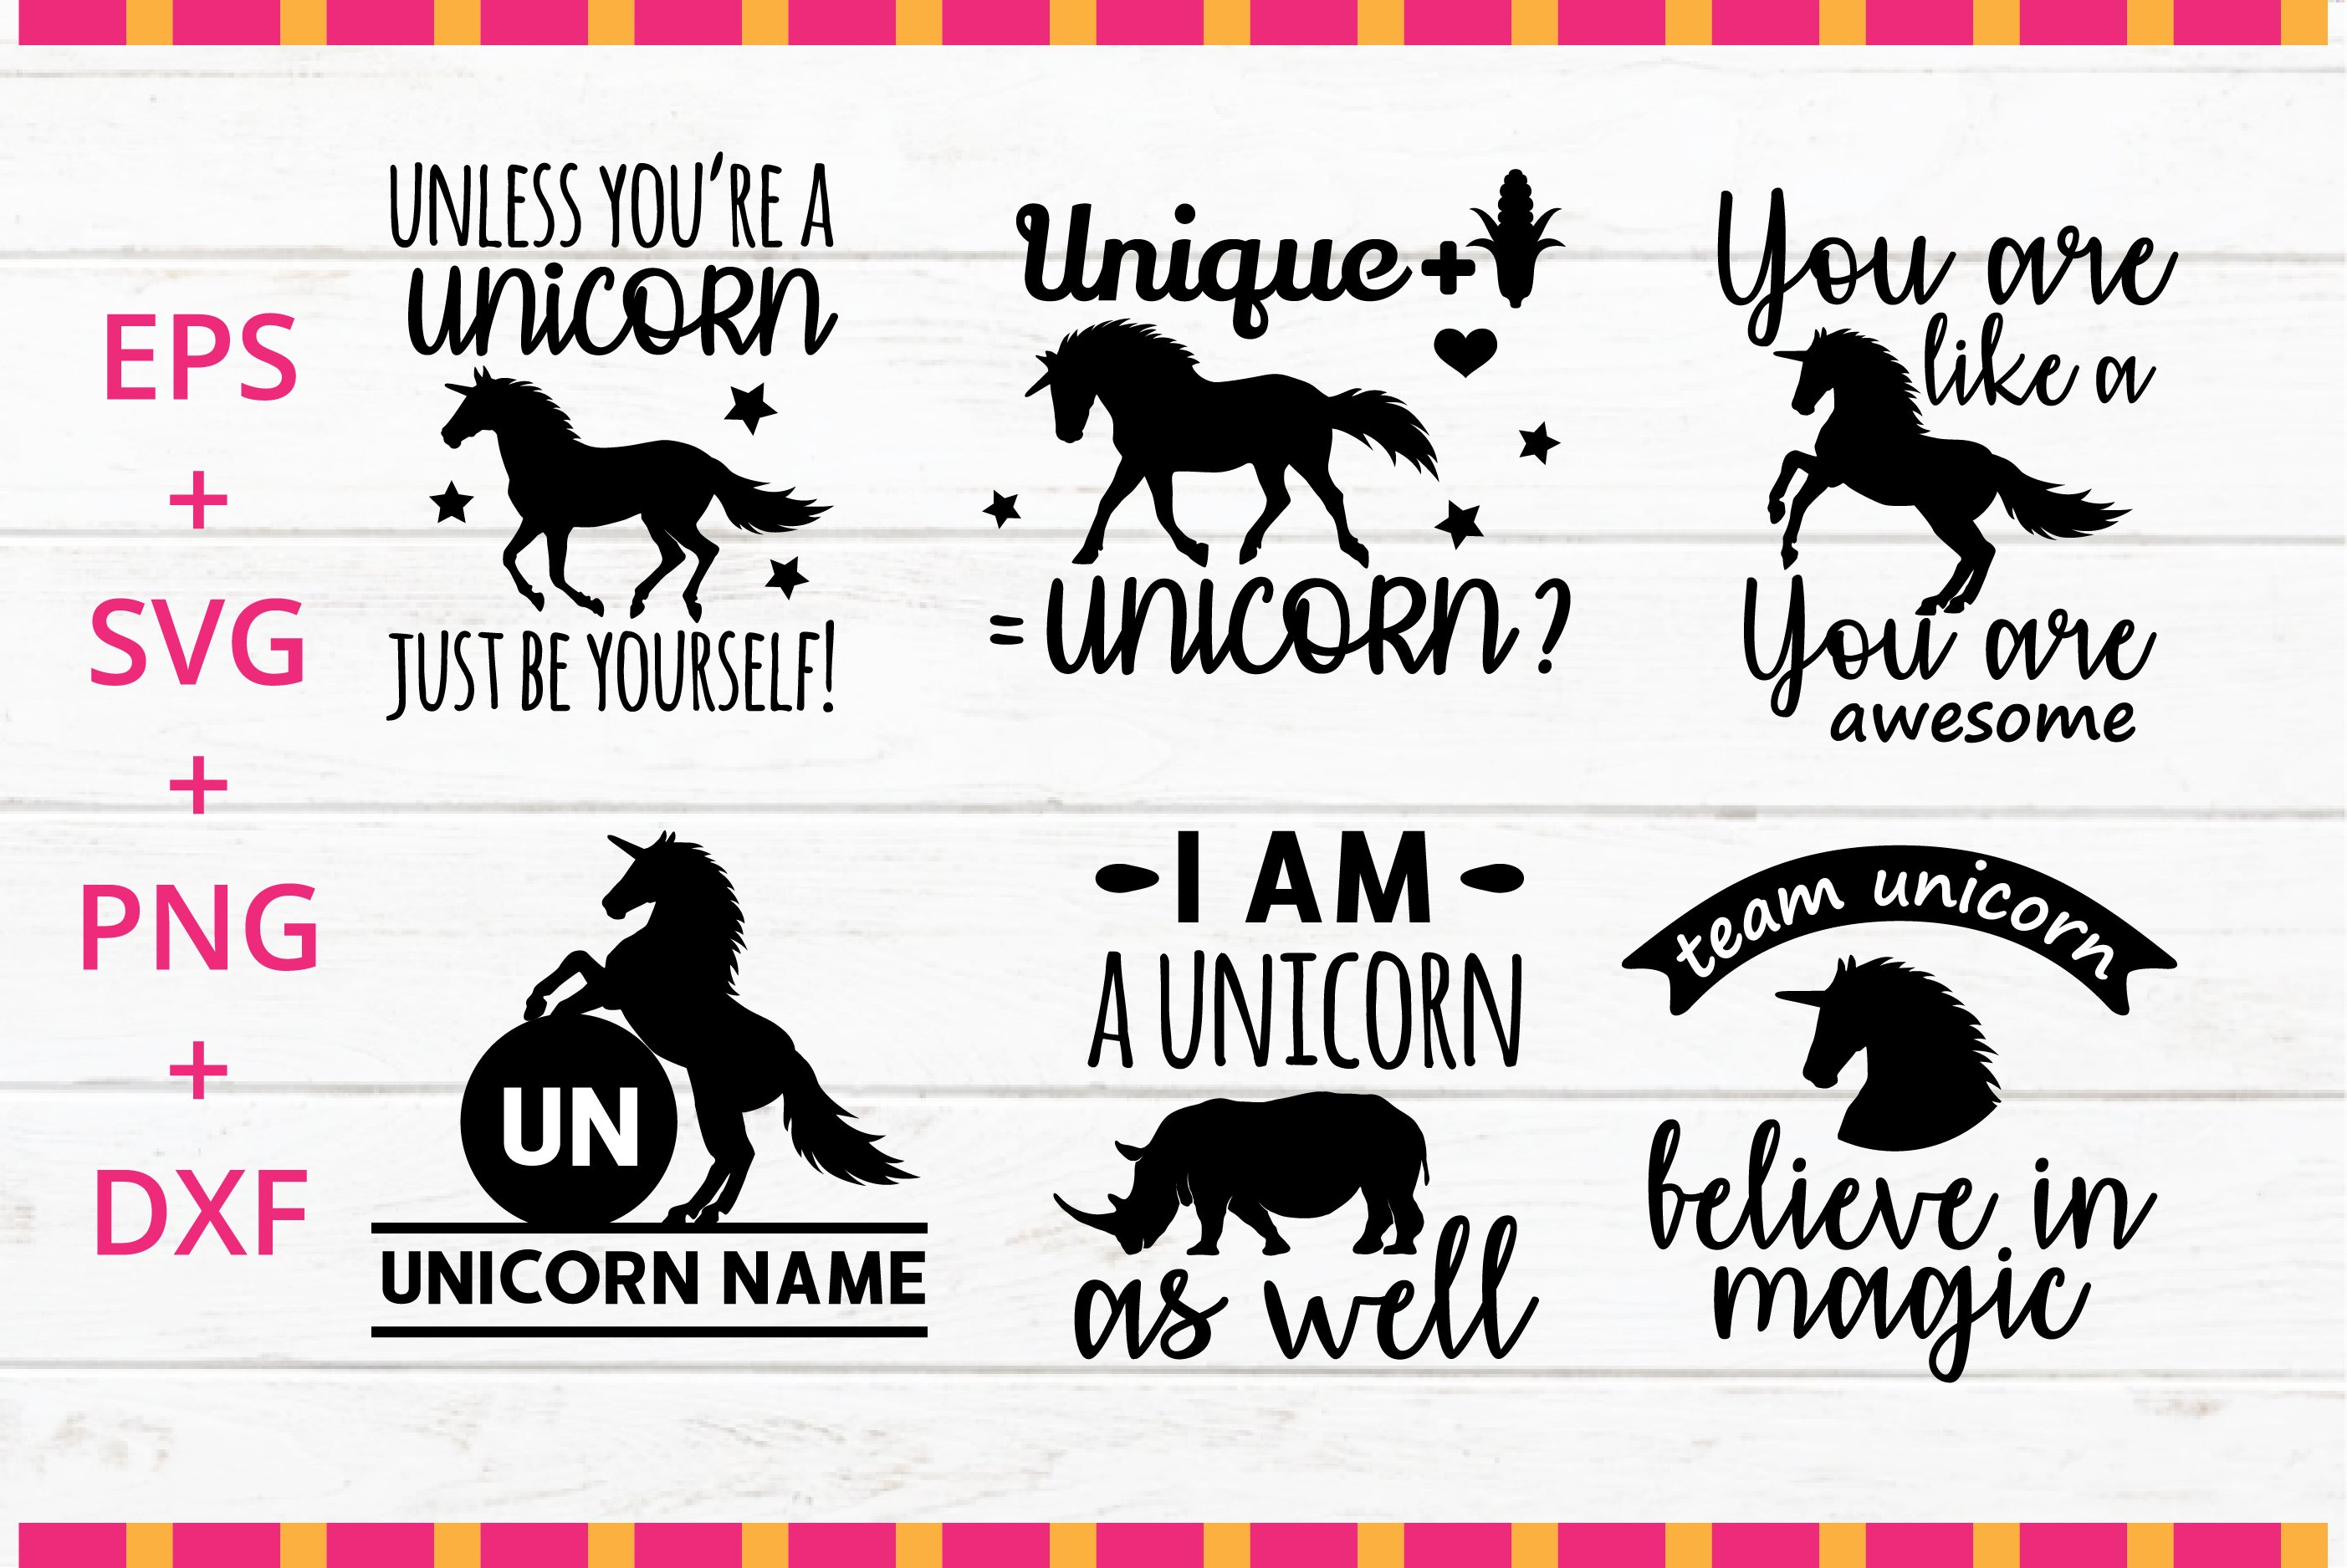 Unicorn Funny Quotes Svg Crafter Cutting File 190618 Svgs Design Bundles